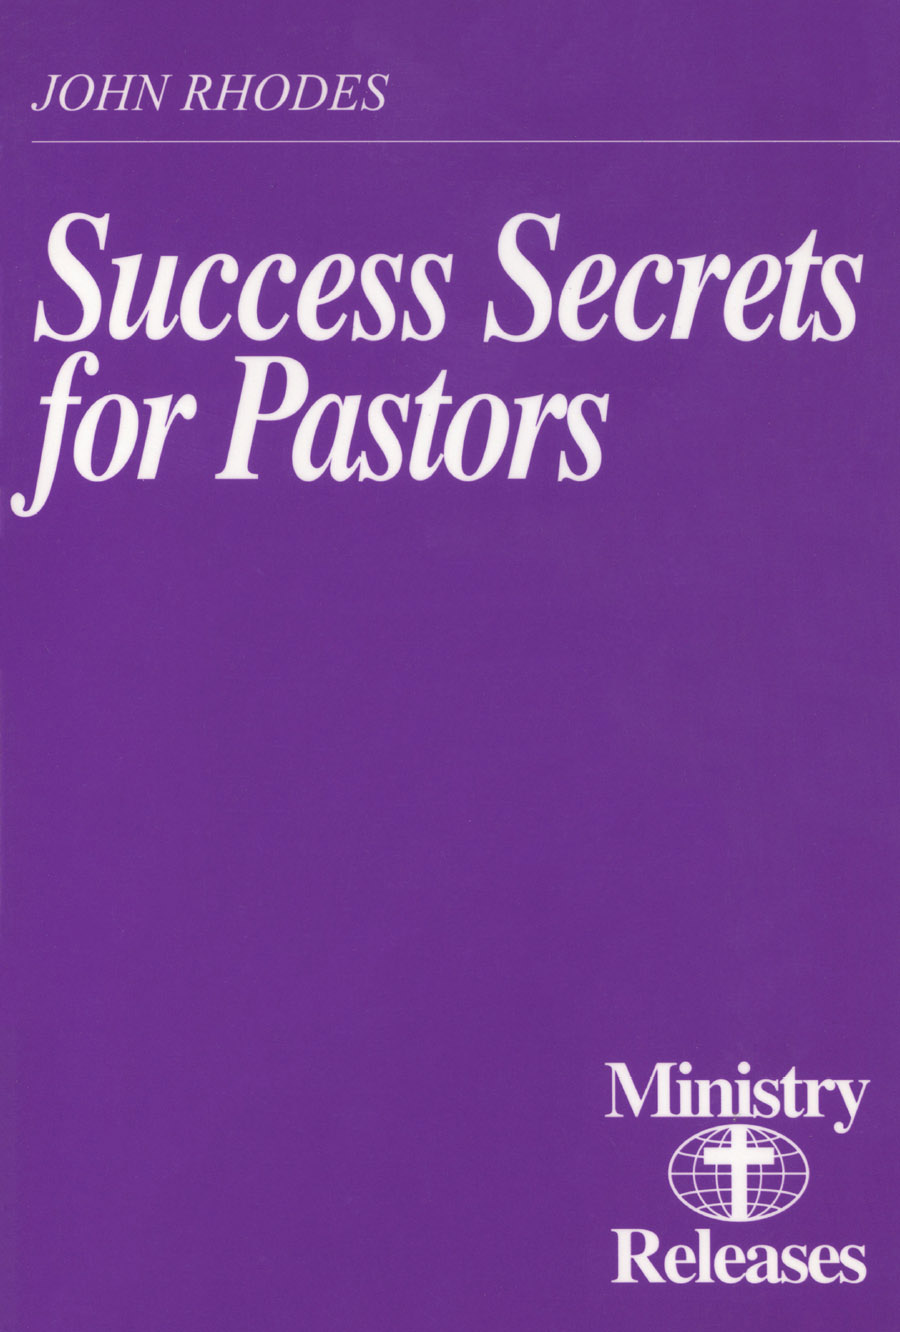 Success Secrets for Pastors (PDF) cover image